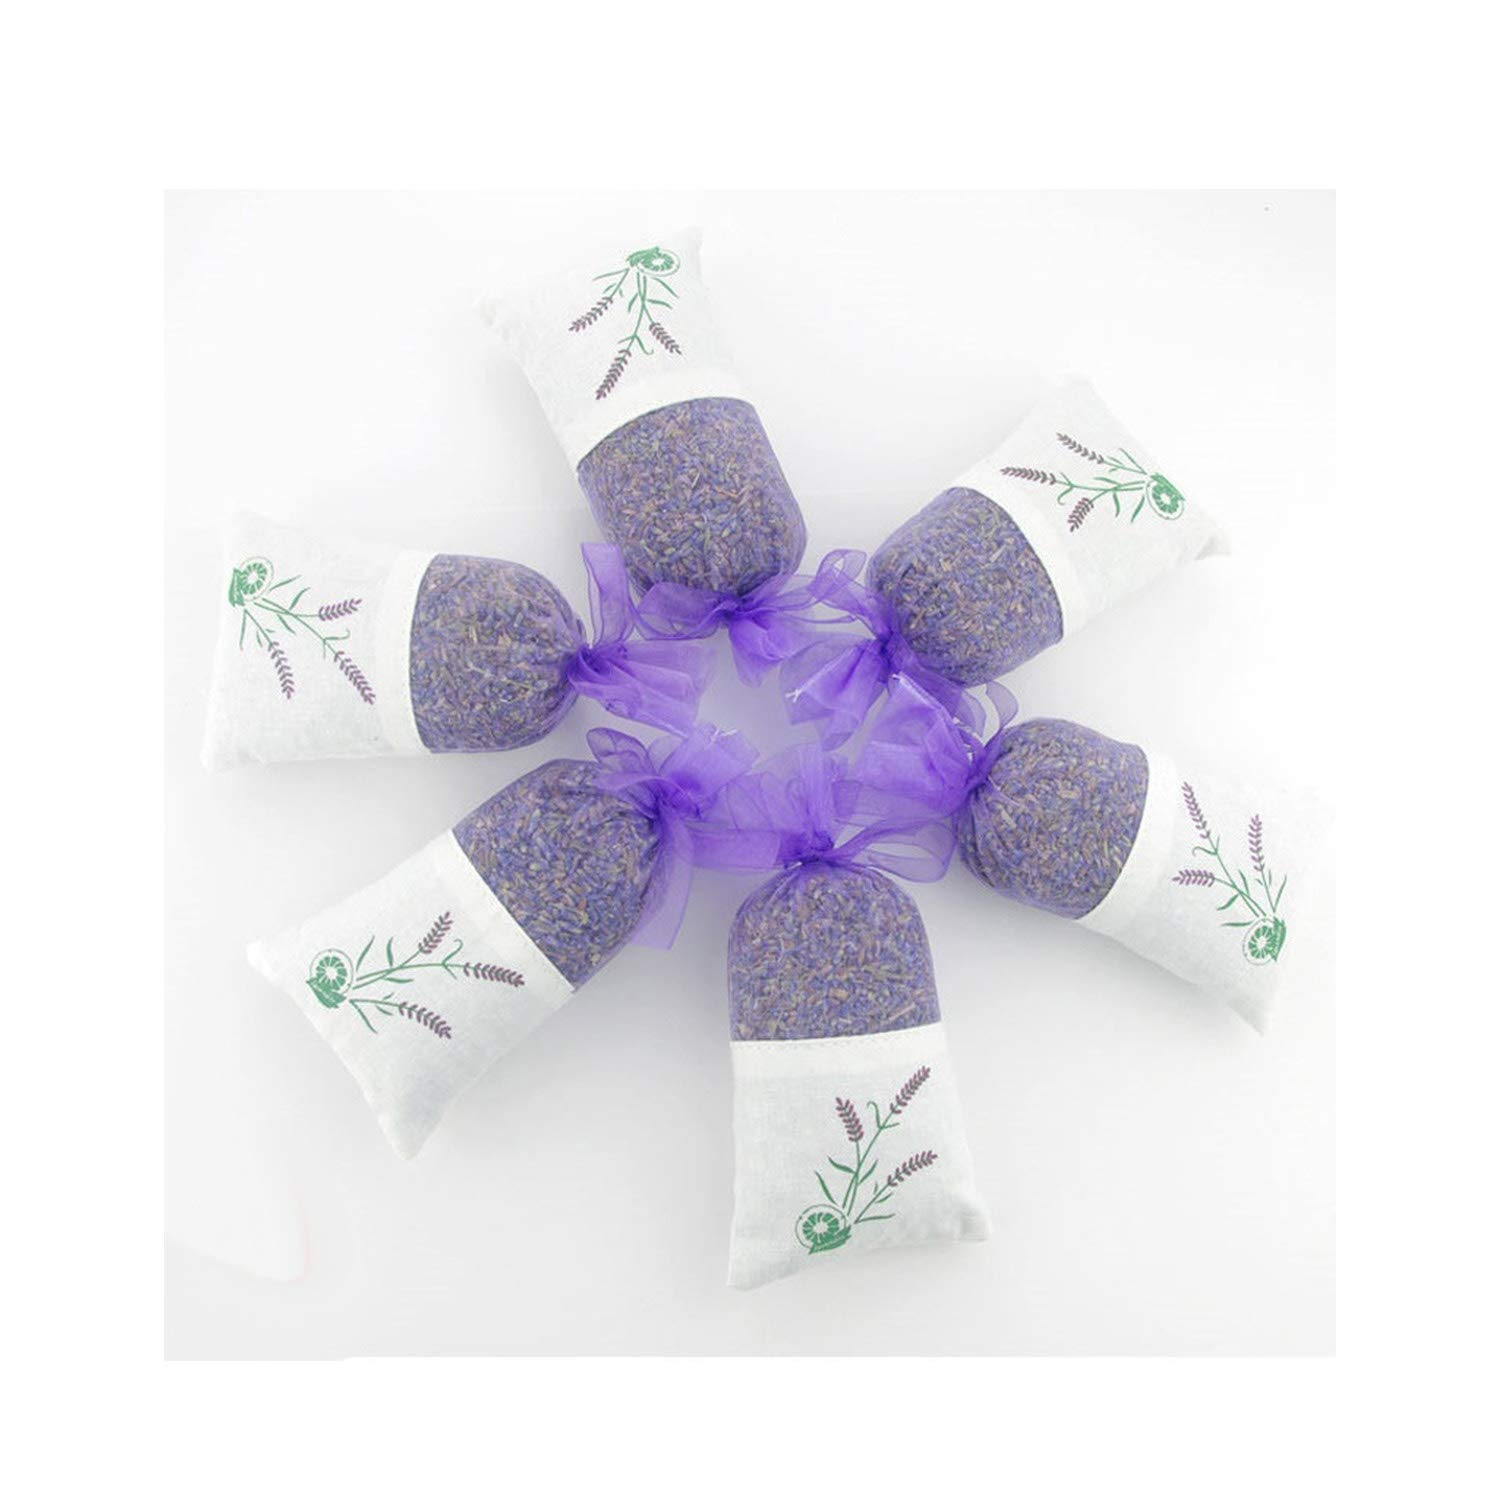 yuexianghui Natural Dried Flowers Lavender Bud Sachet Decorative Flower Aromatic Air Fresh Living Room Drawer,6 Pcs